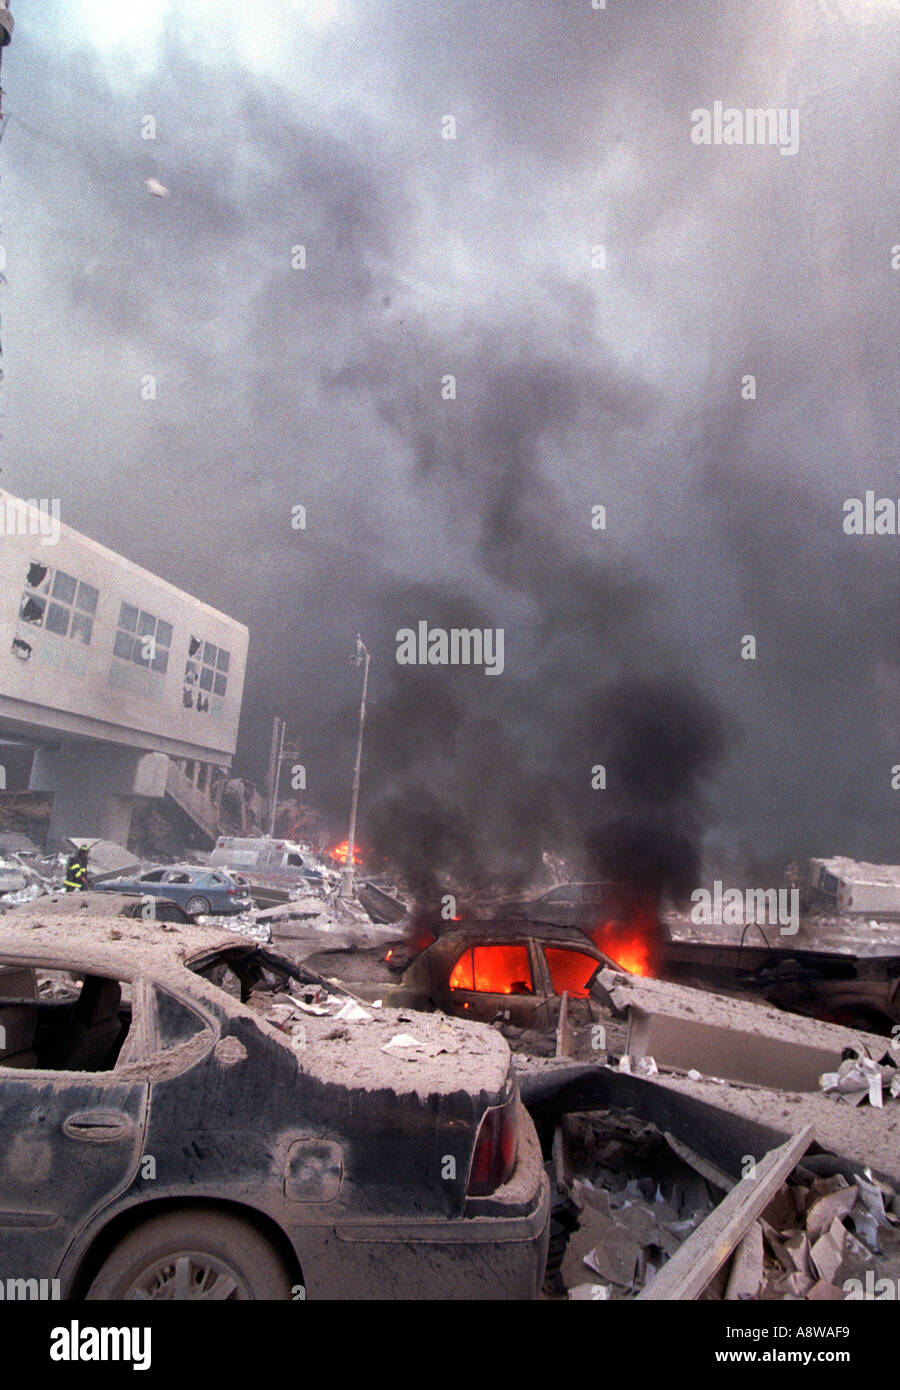 World Trade Center terrorist attack on September 11 2001 Debris and burning vehicles on West and Liberty Streets  - Stock Image